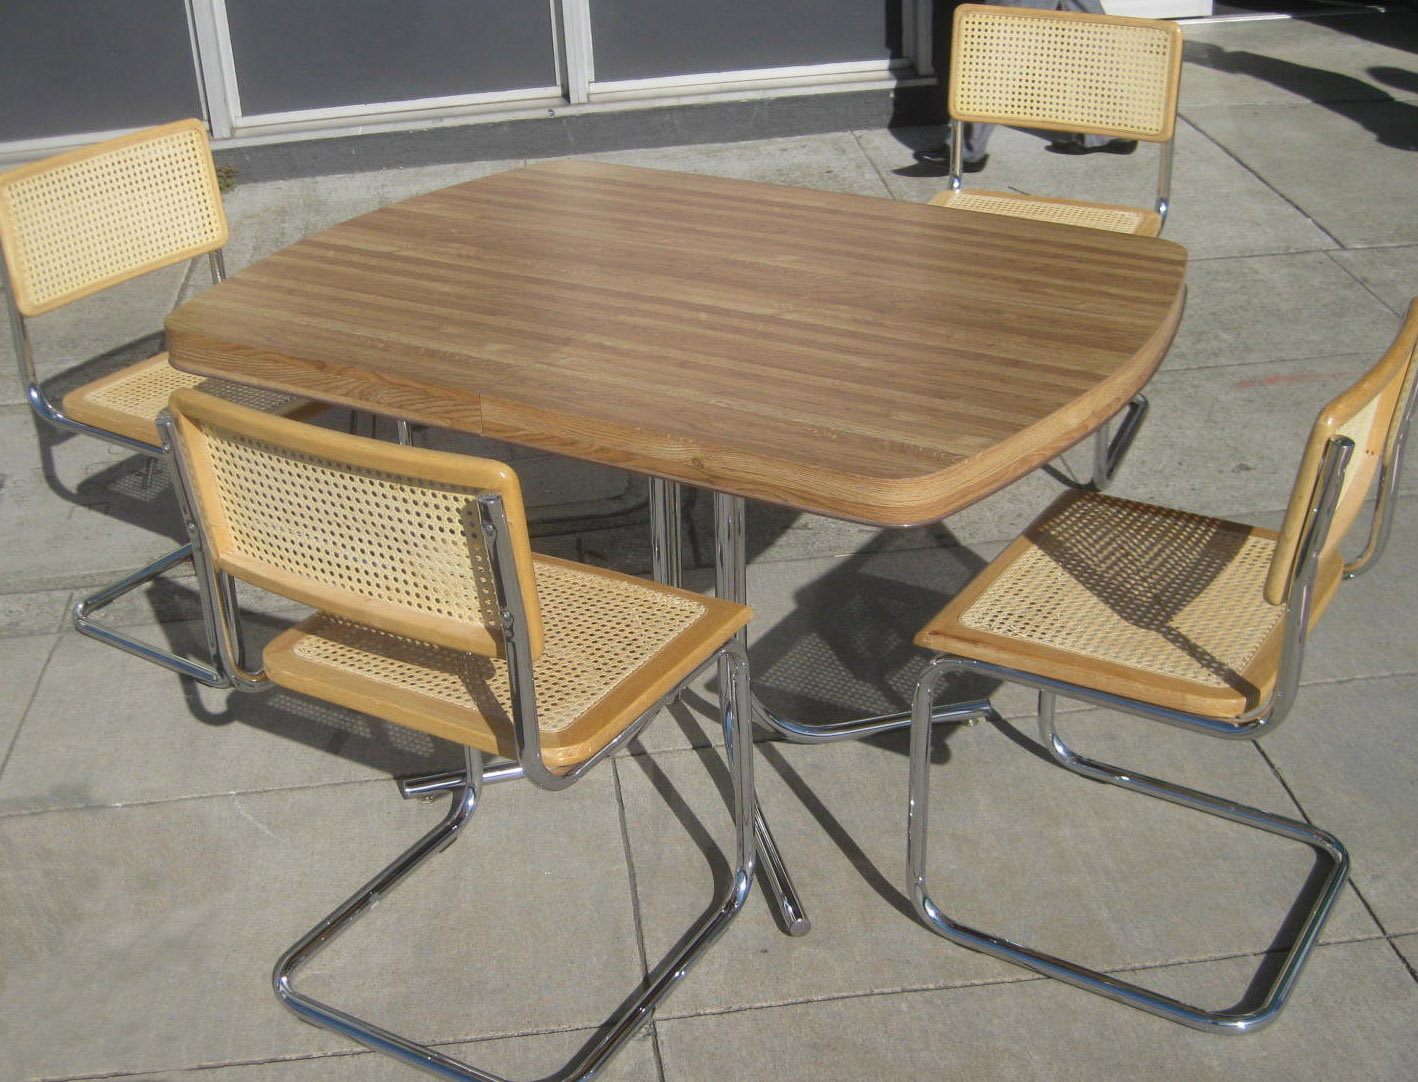 Uhuru furniture collectibles sold retro kitchen table for Kitchen table and chairs